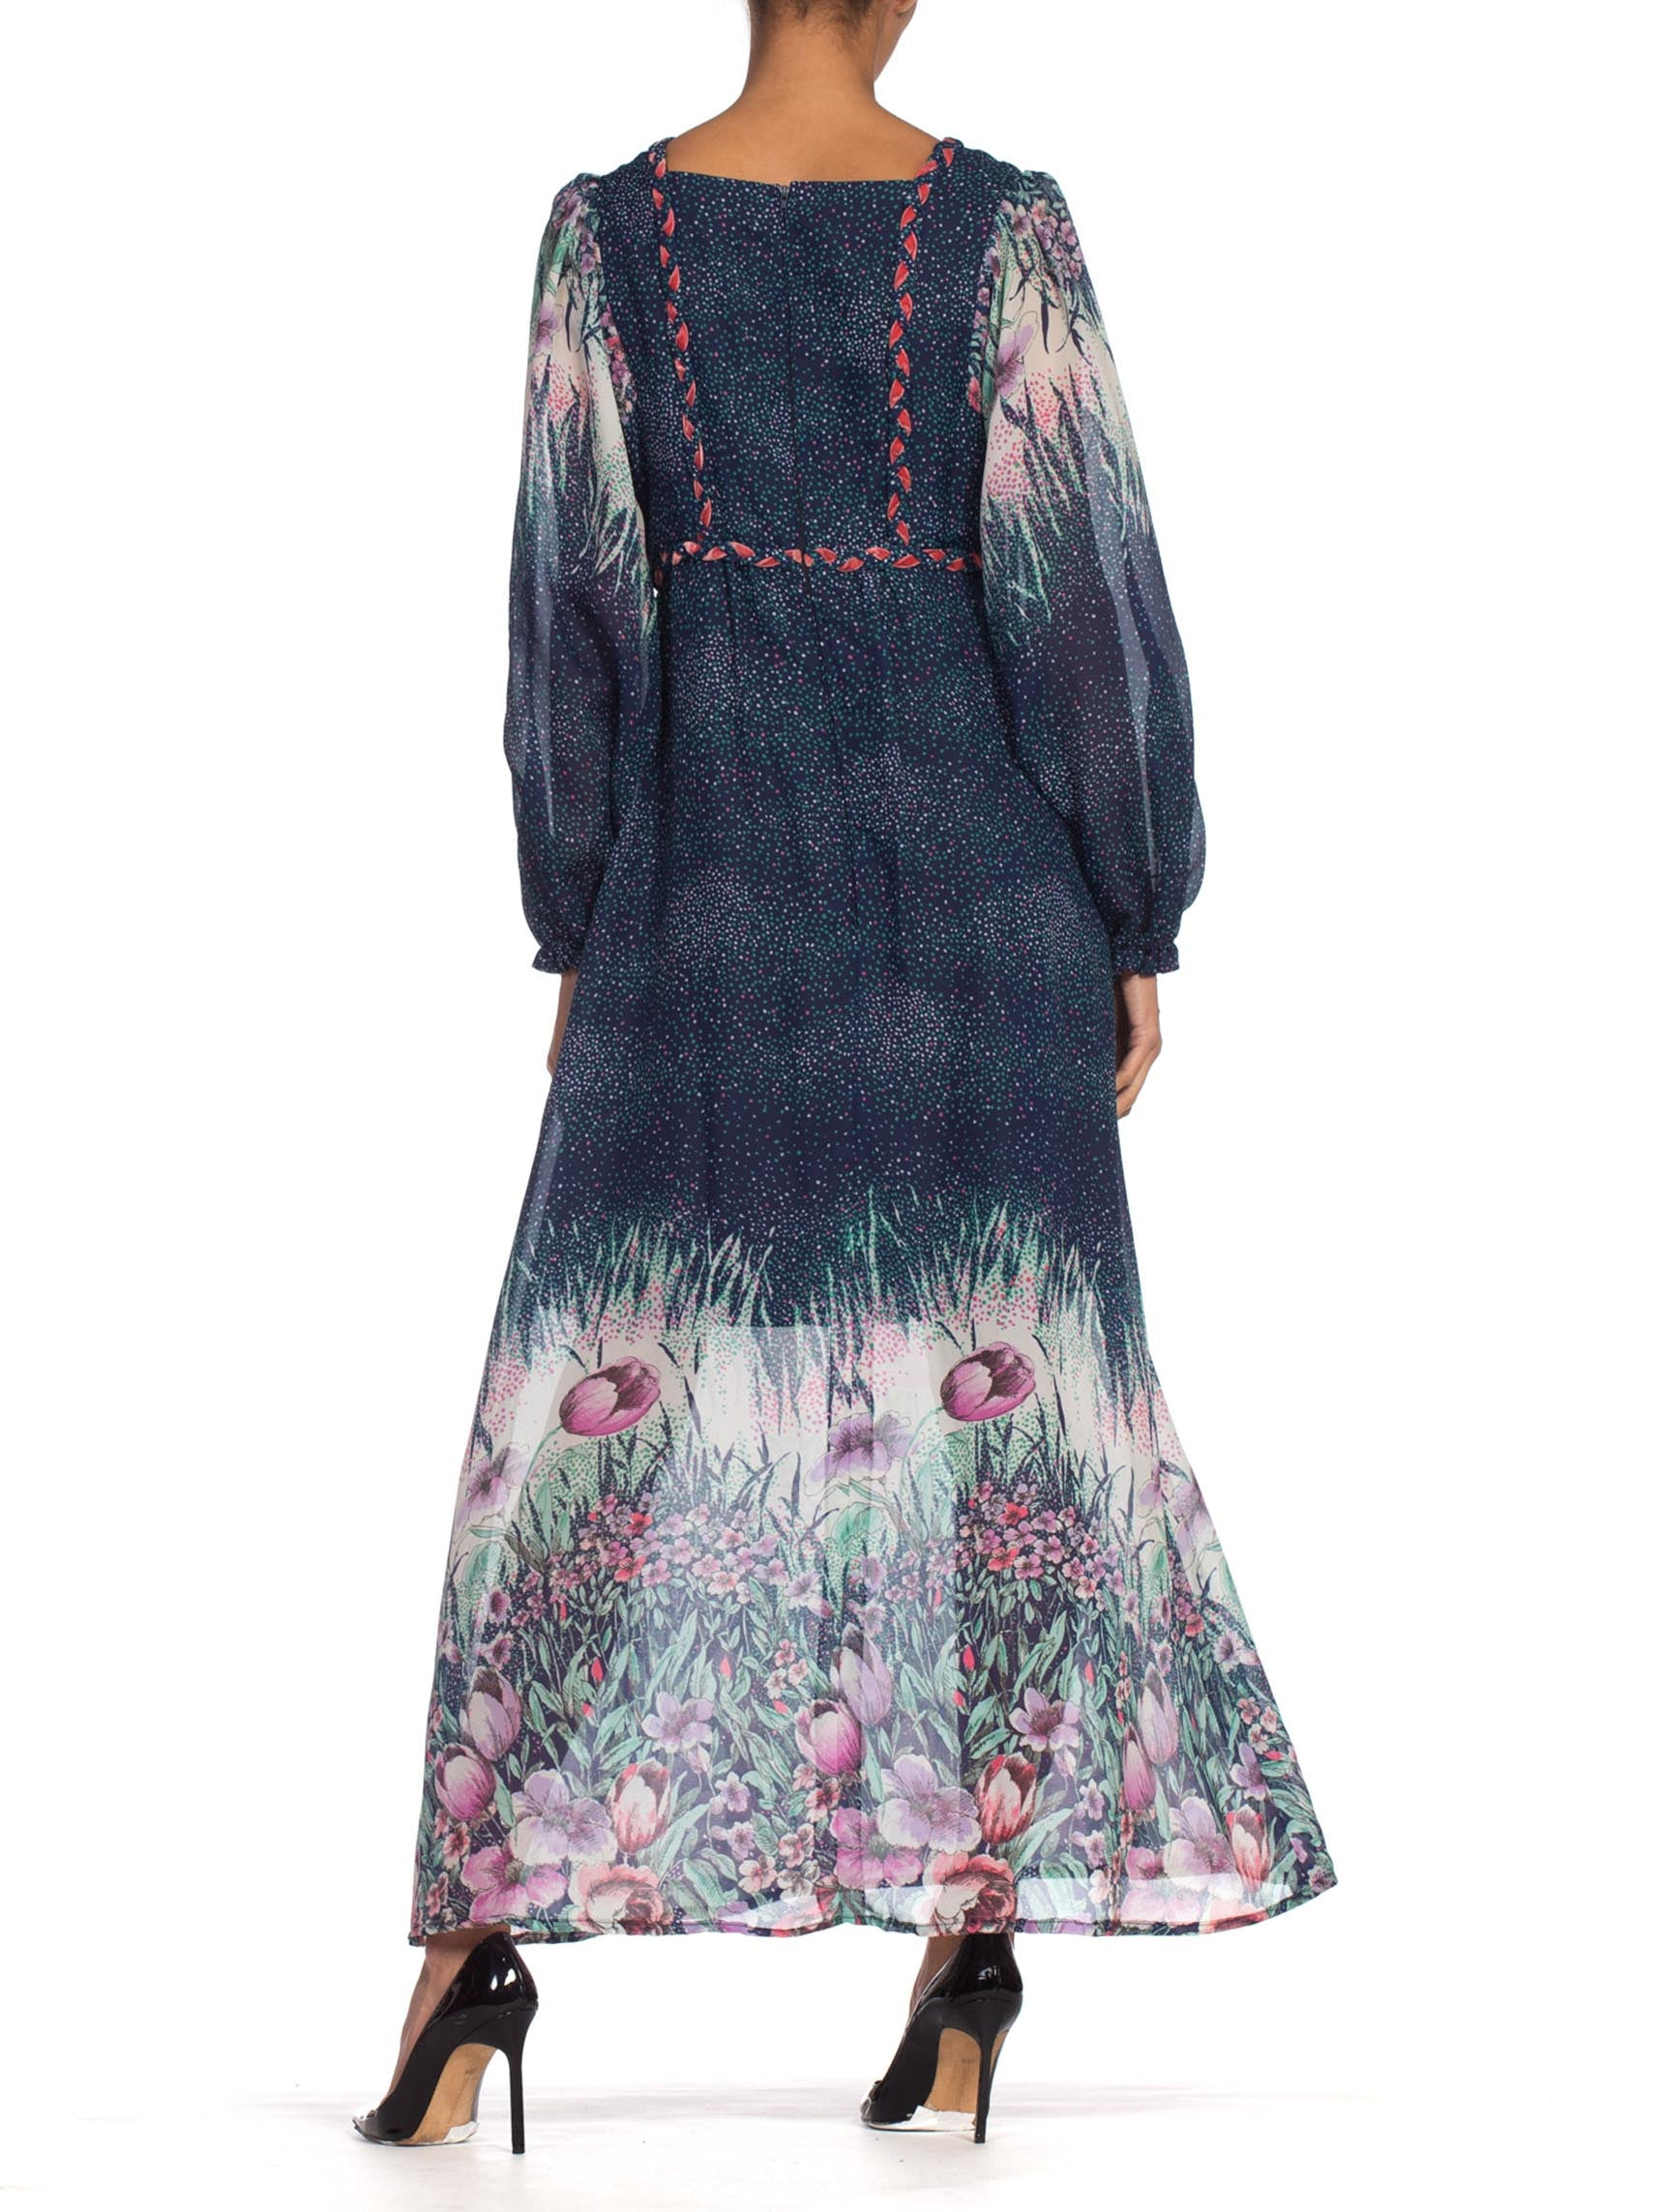 1970'S Navy Blue Polyester Chiffon Prairie Floral Boho Dress From Belgium